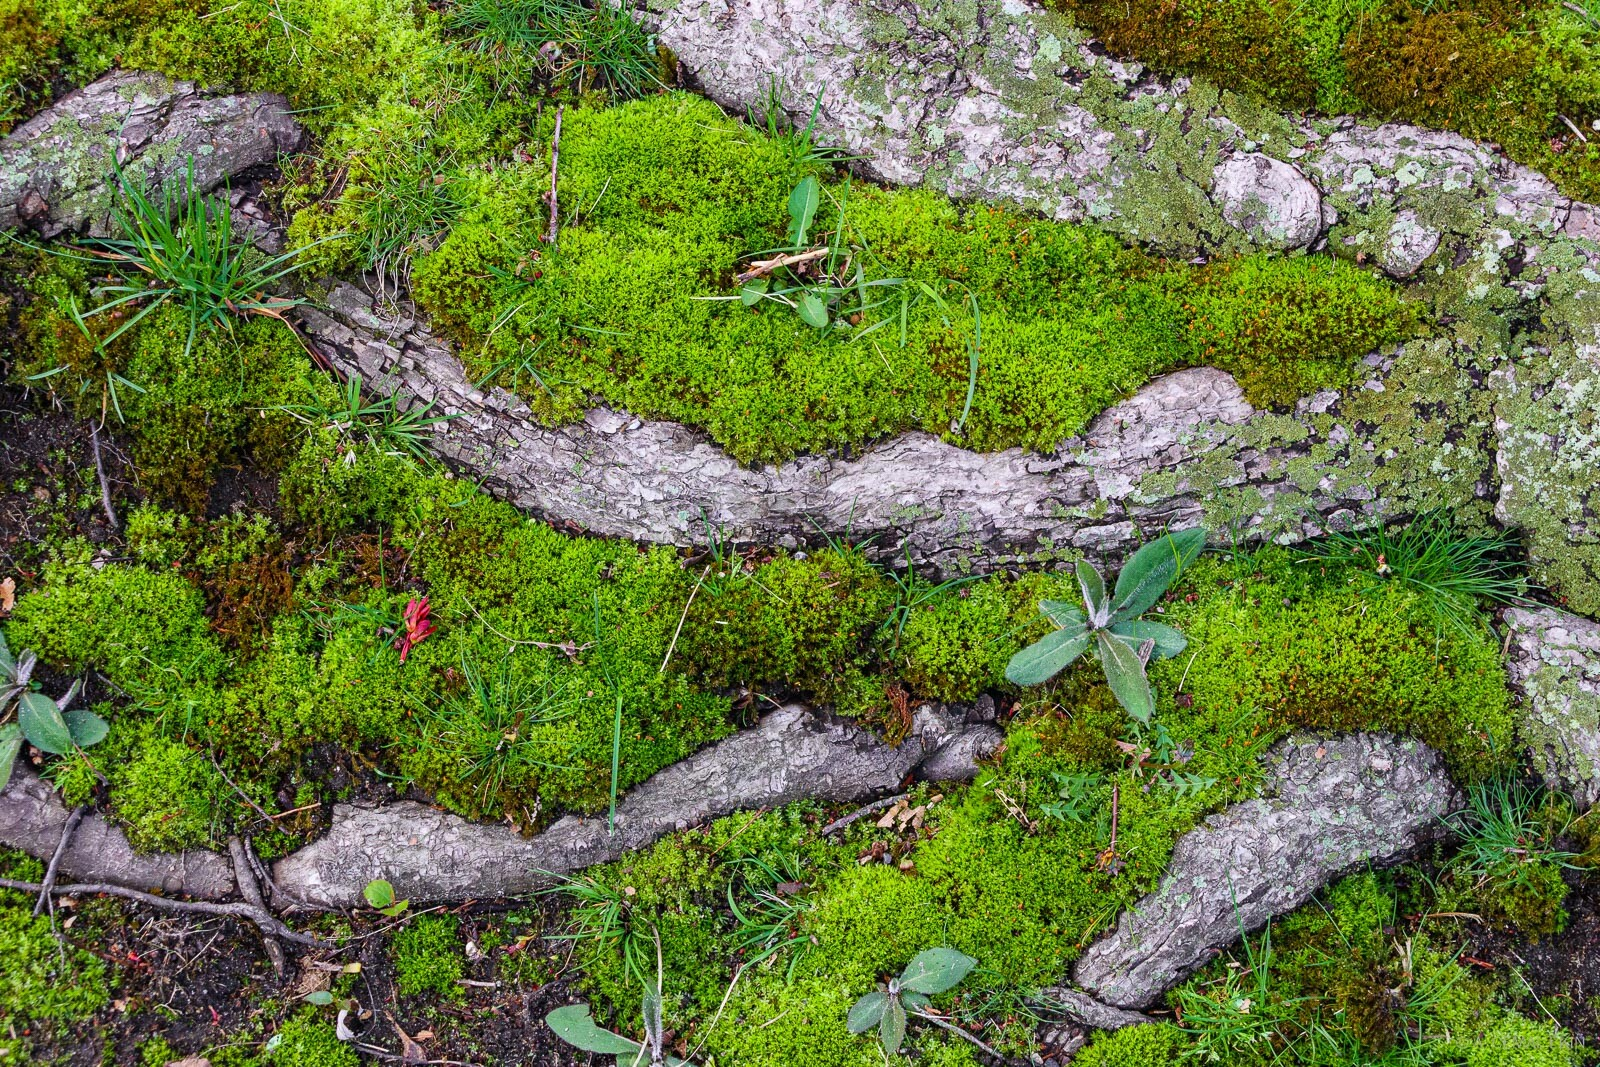 Roots in moss